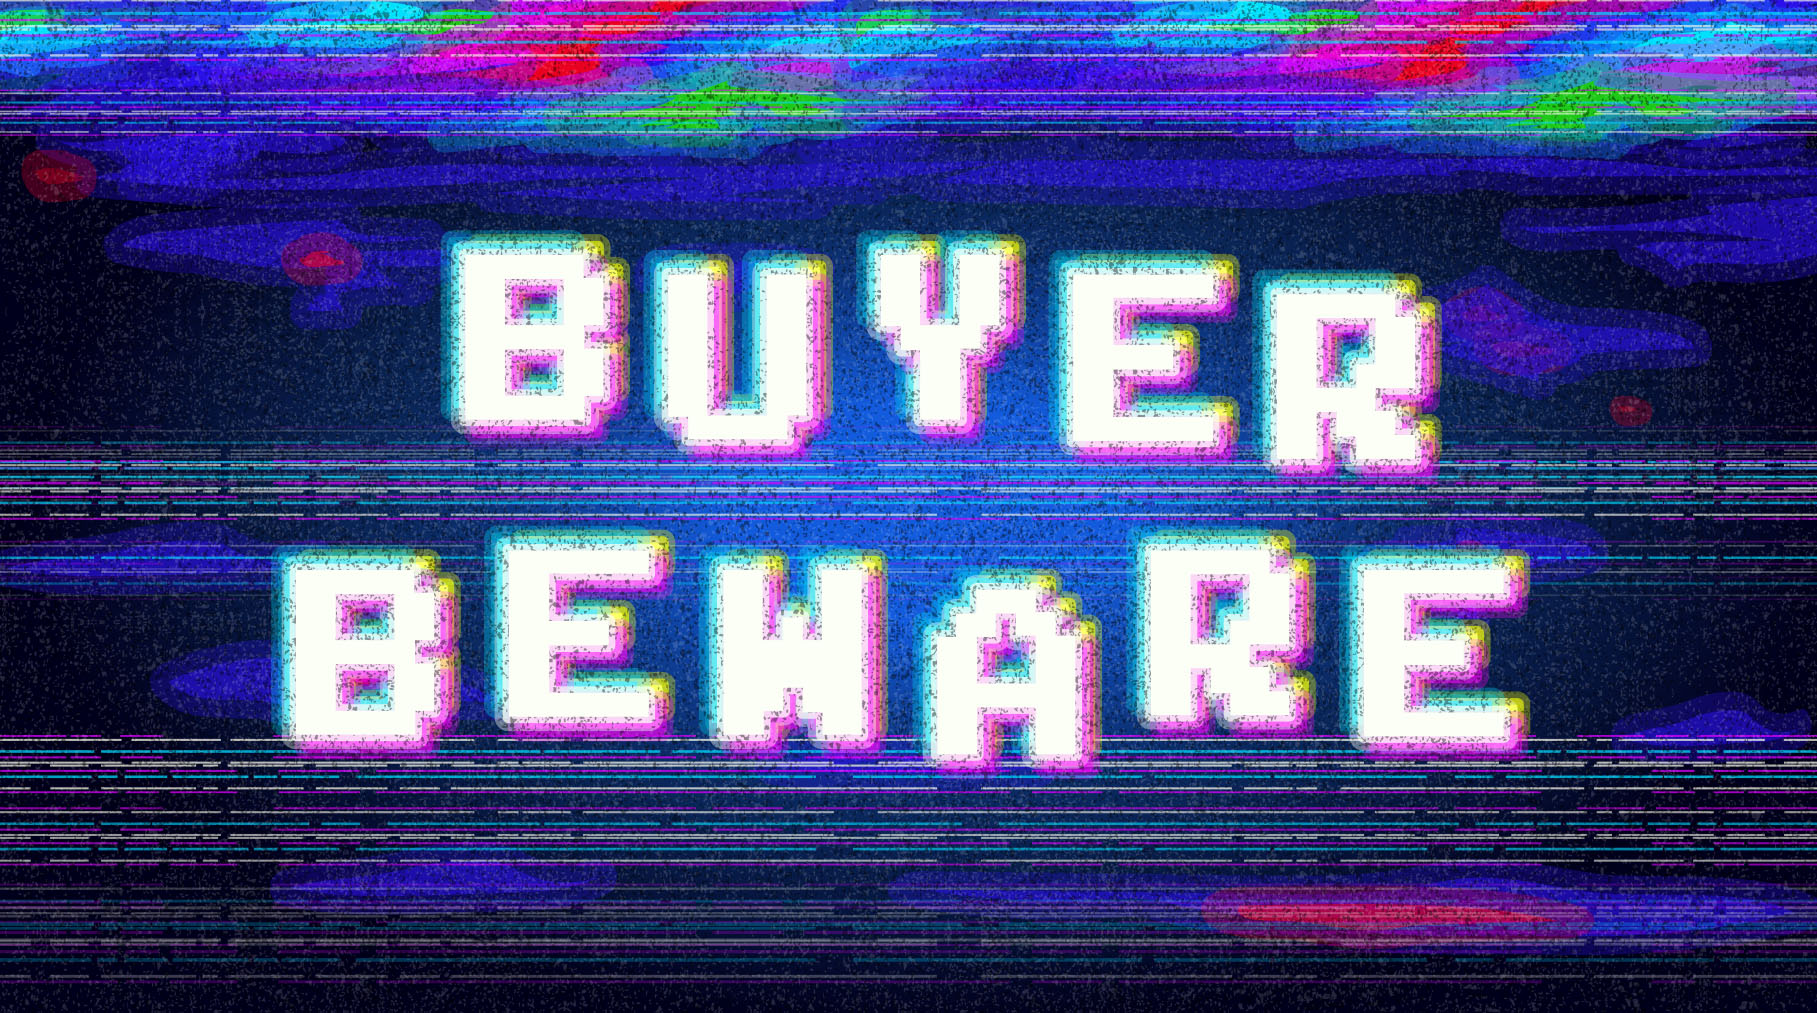 Caveat Emptor - Buyer Beware